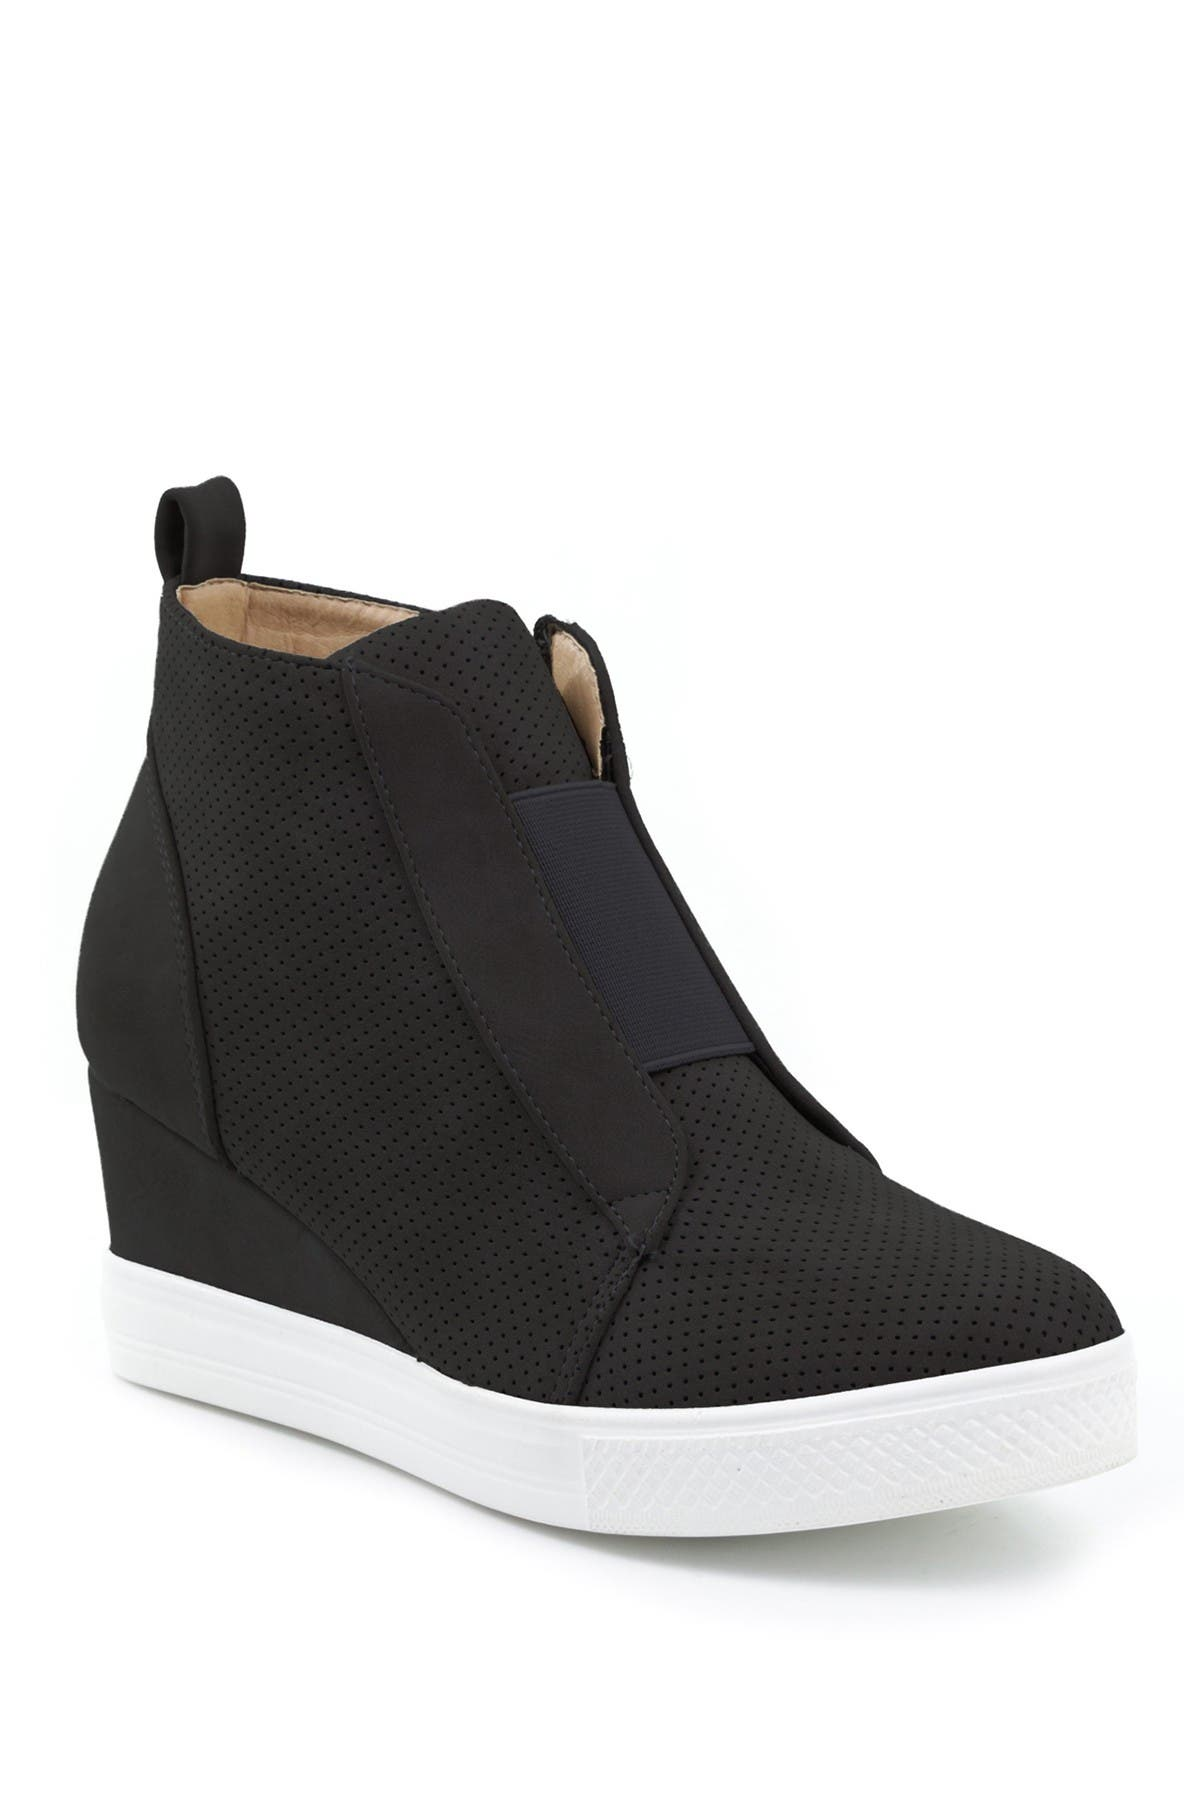 Image of Catherine Malandrino Sabra Perforated Wedge Sneaker